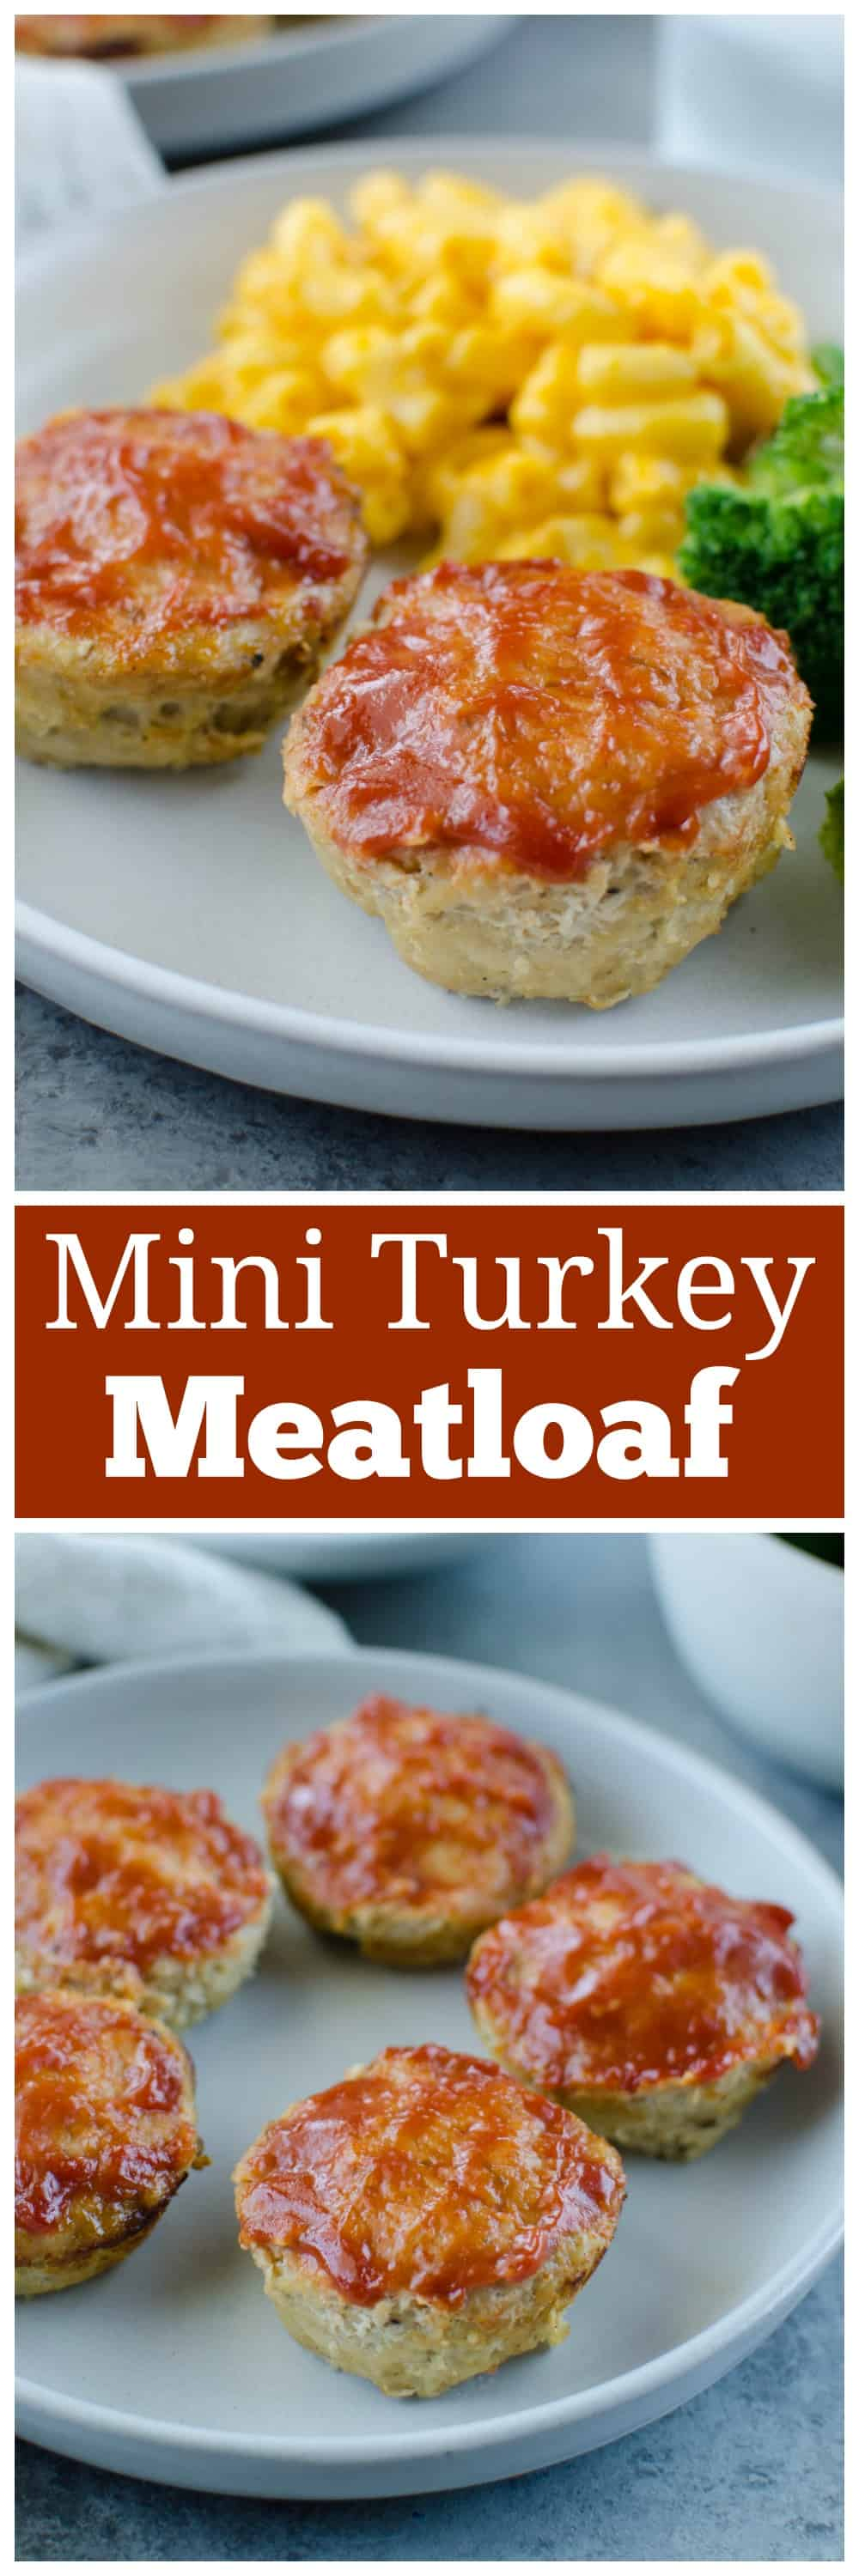 Mini Turkey Meatloaf - turkey meatloaf cooked in just 20 minutes in a muffin pan! Easy, healthy, and delicious dinner.